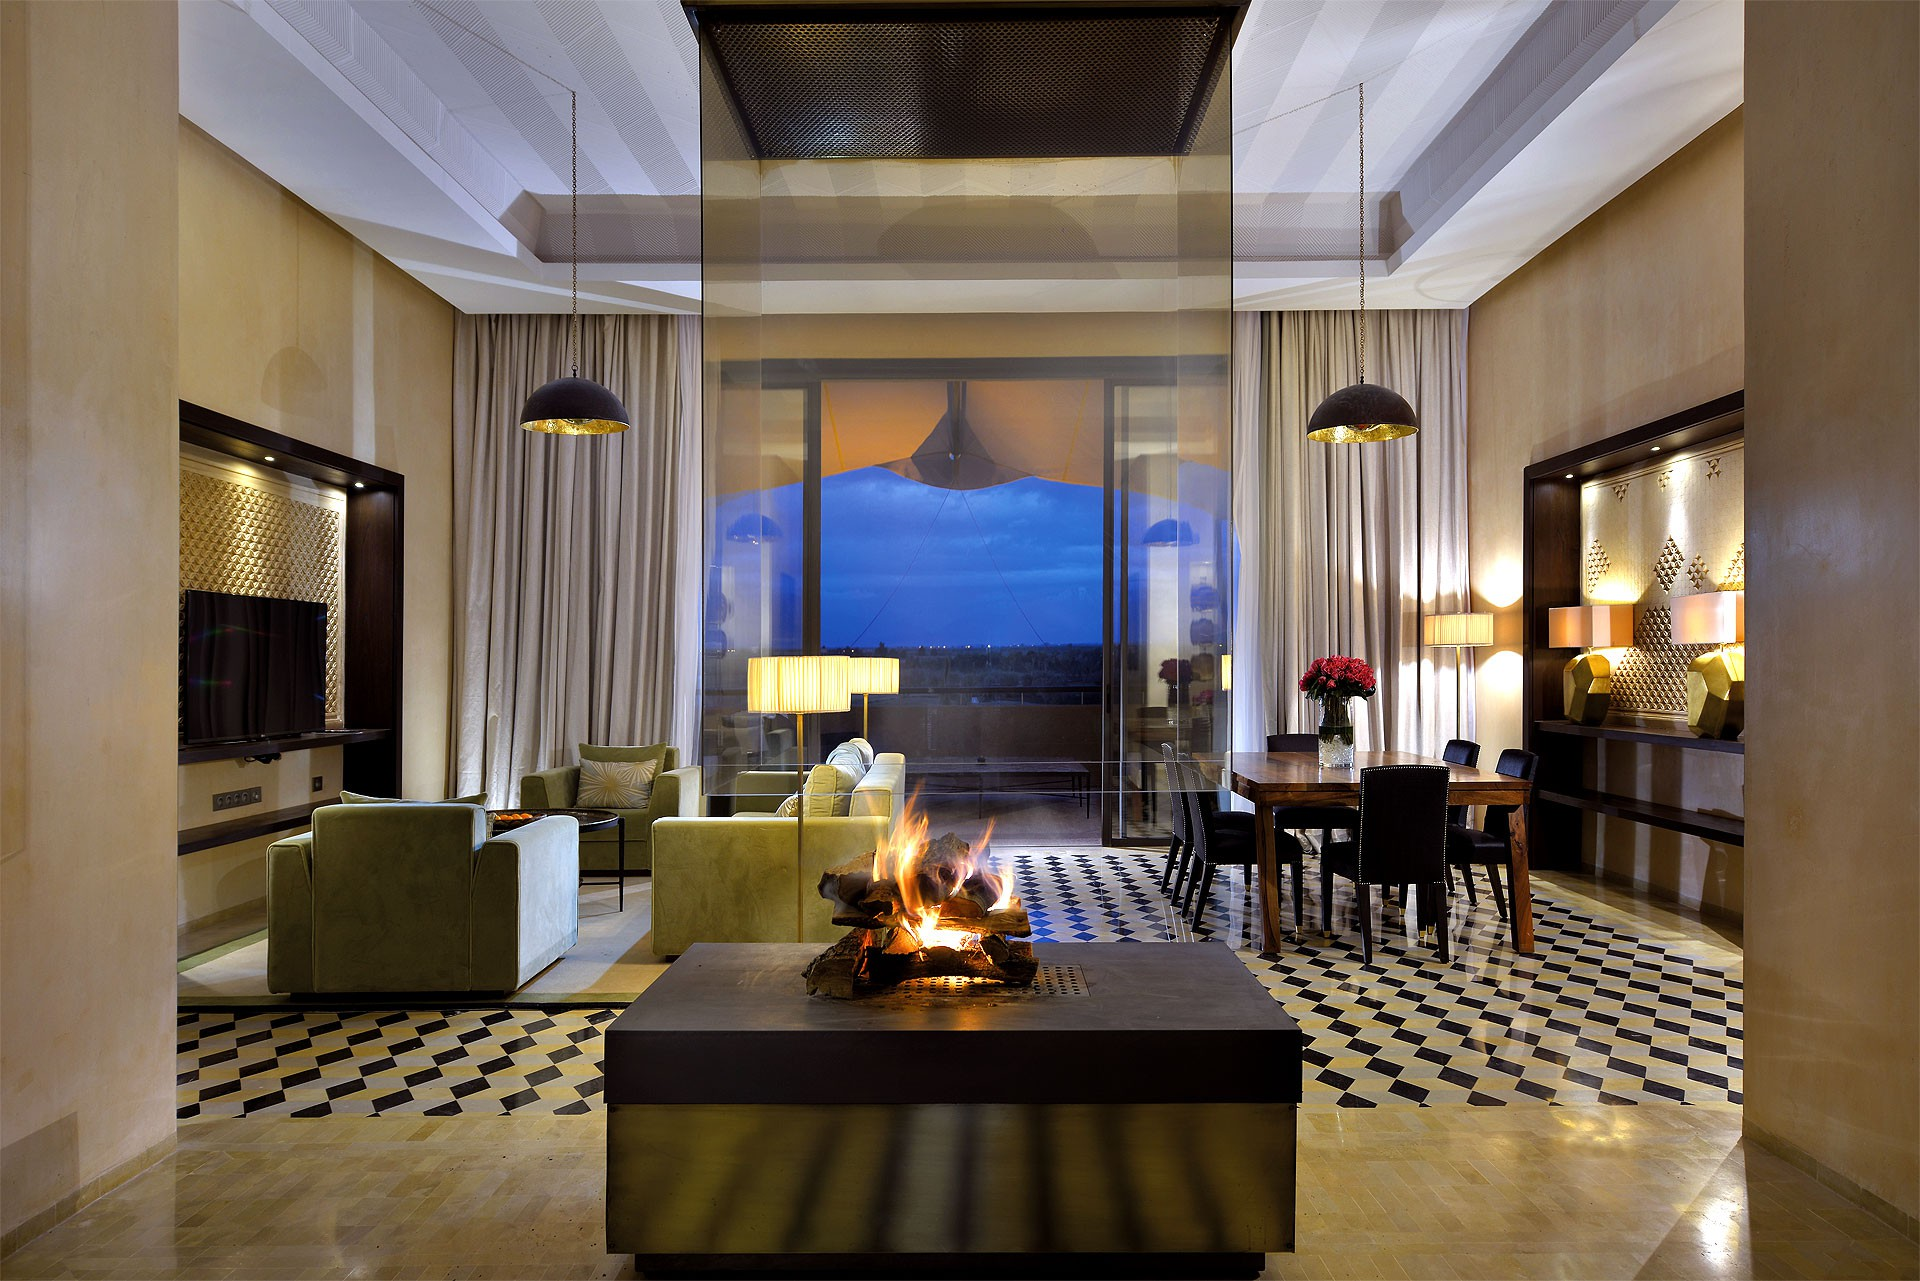 Hotel Royal Palm Marrakech - walnut dining table - presidential suite